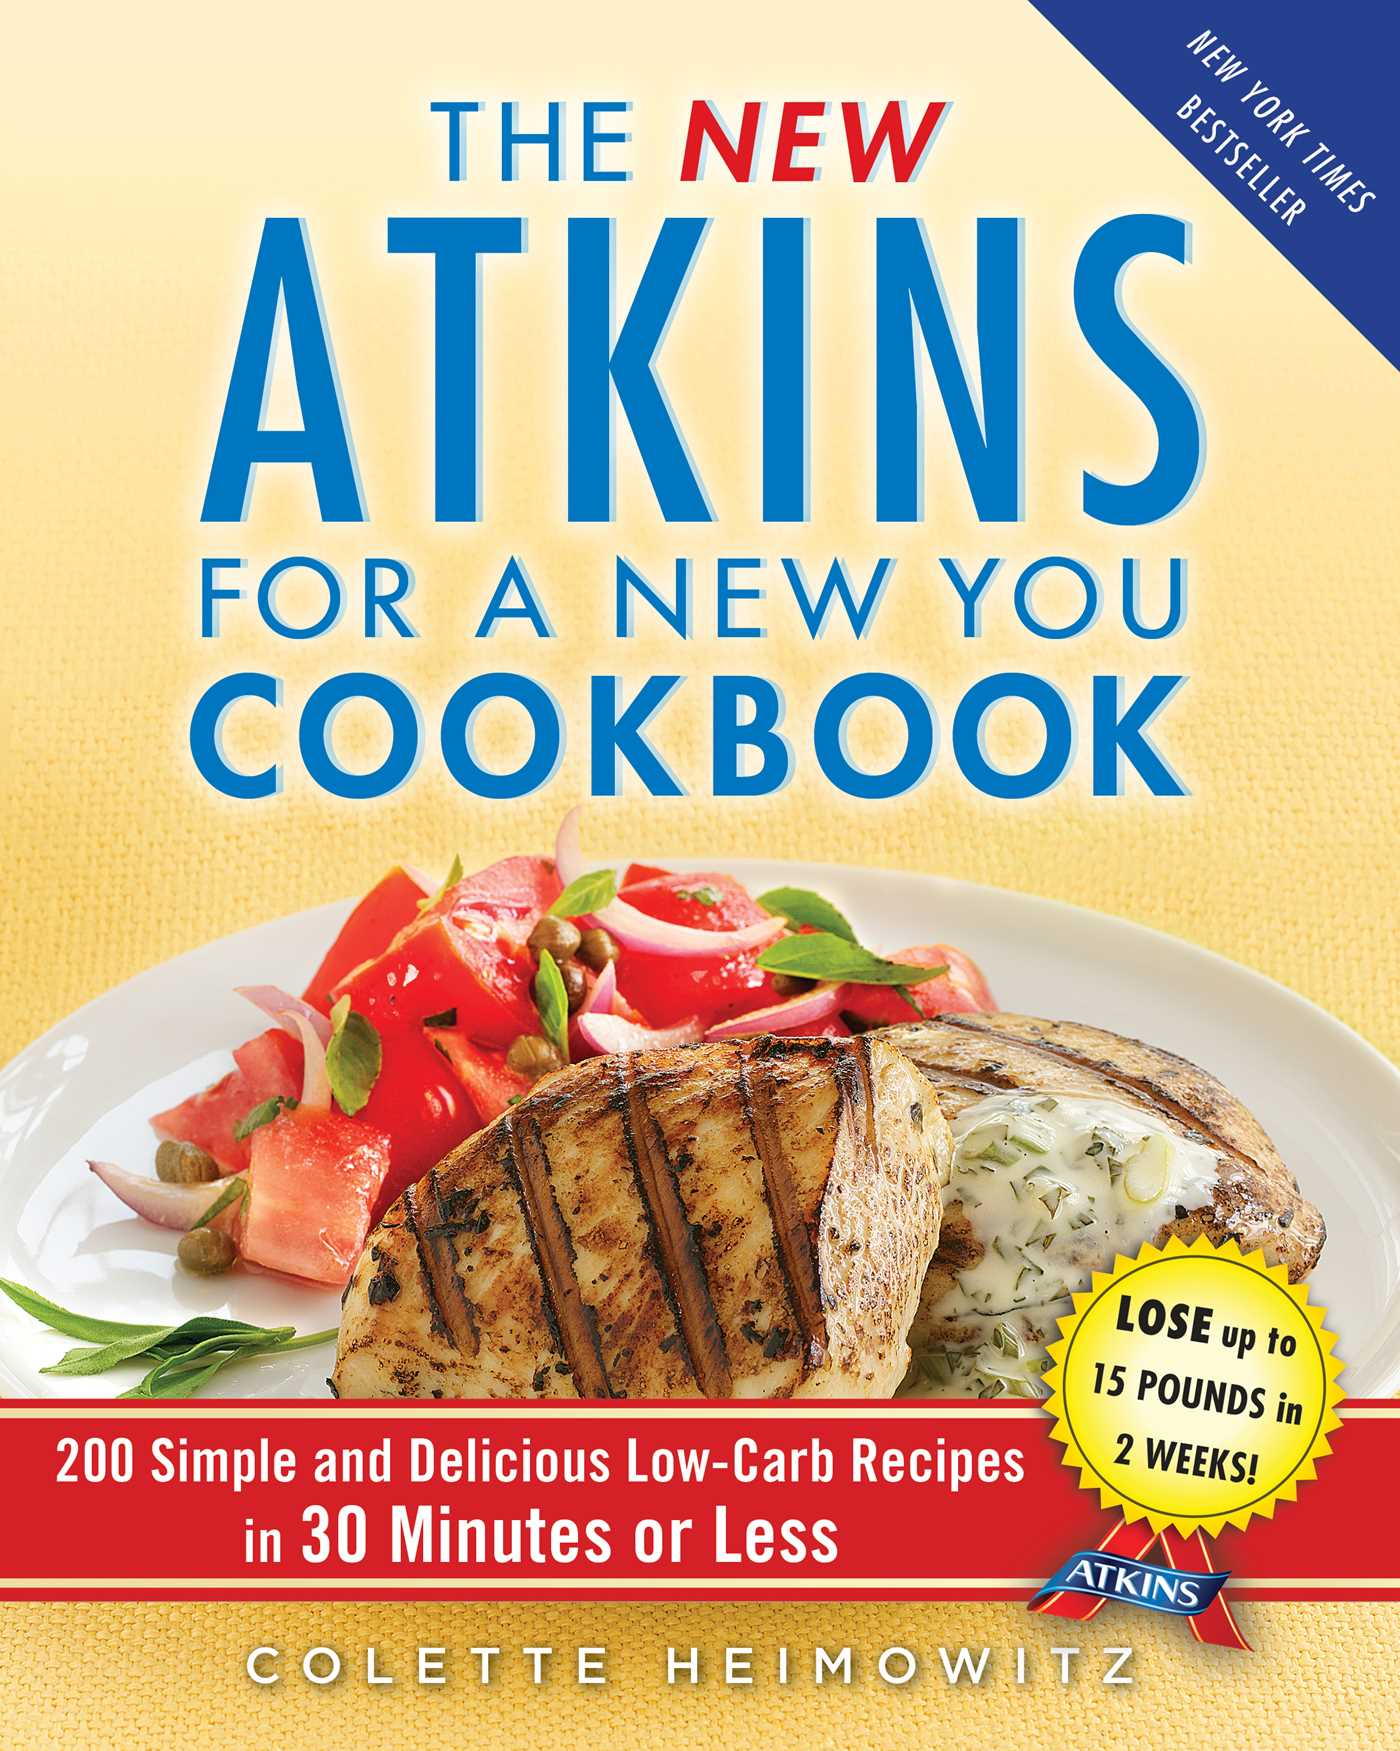 The-new-atkins-for-a-new-you-cookbook-9781451660852_hr